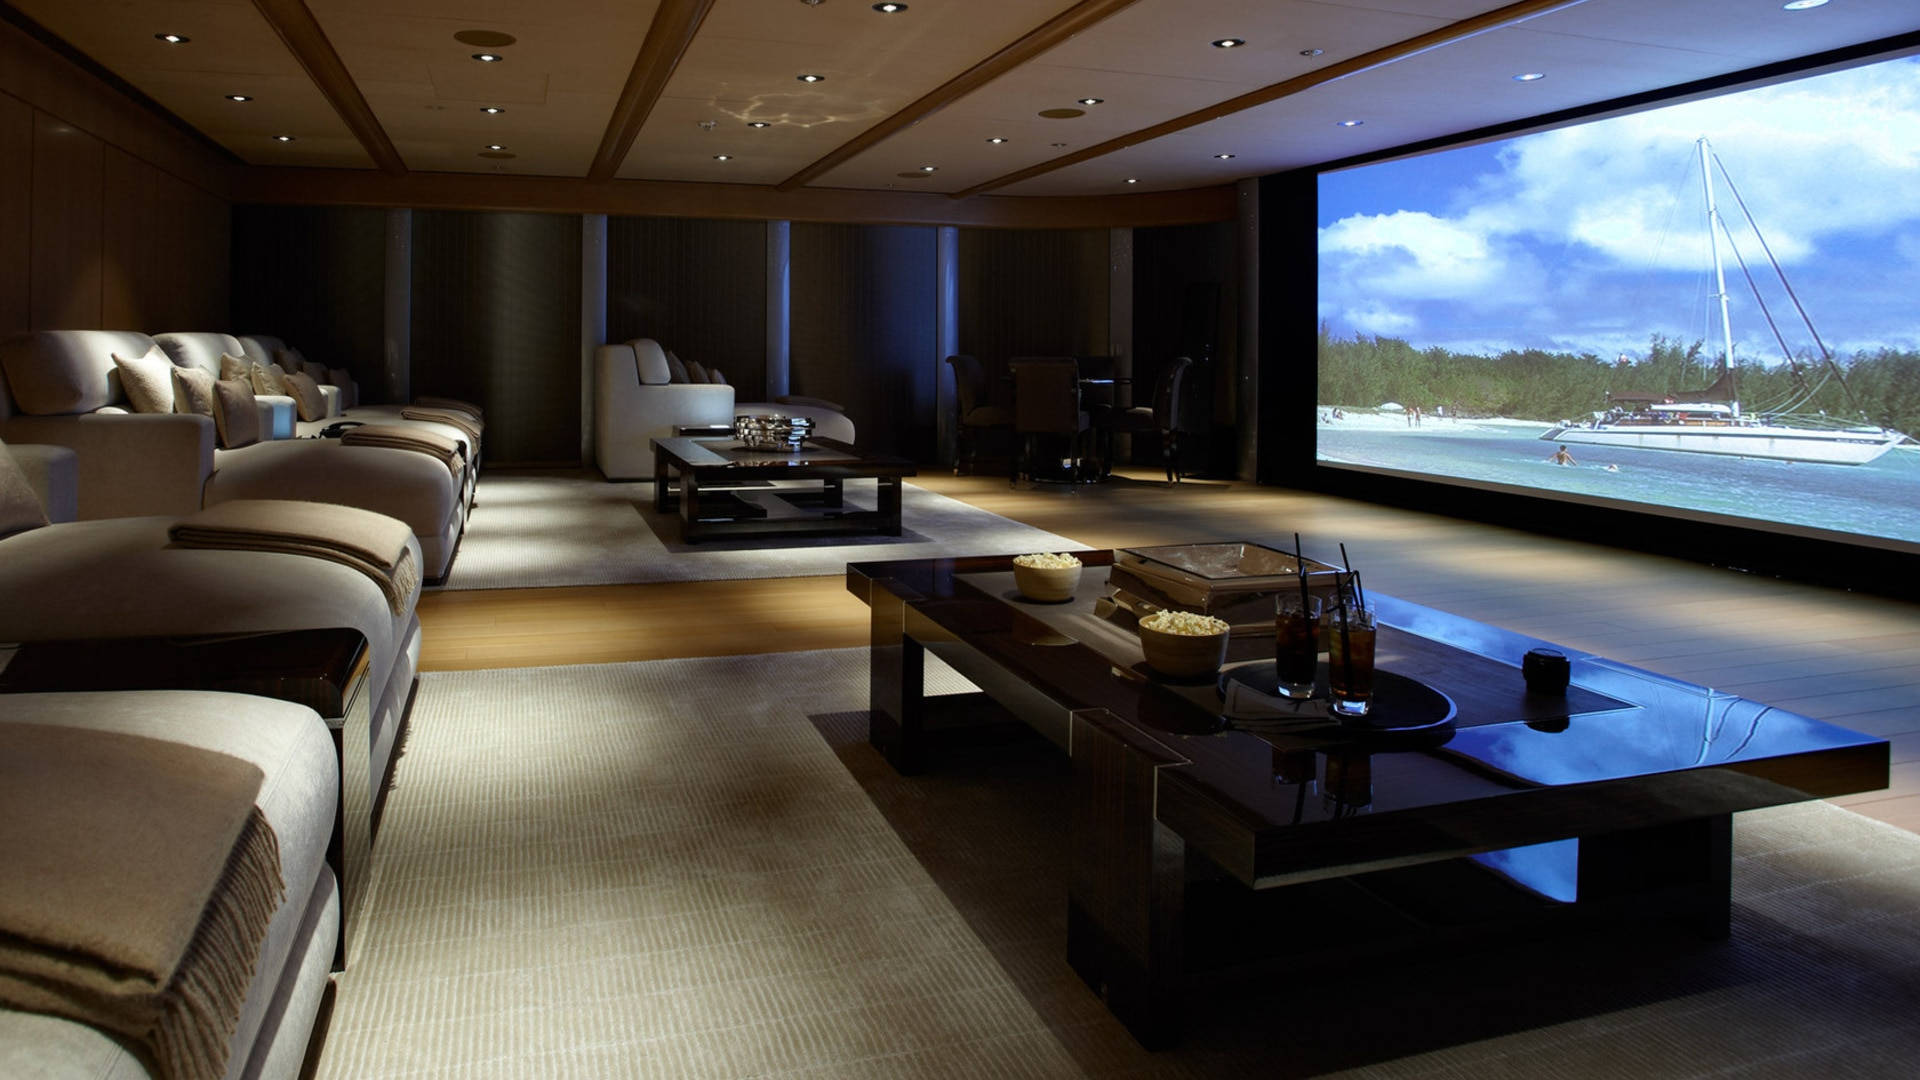 Gemini Technologies In New Delhi Home Theater Experts Multi Room Audio Professional Create An Authentic Cinema Atmosphere Your Own And